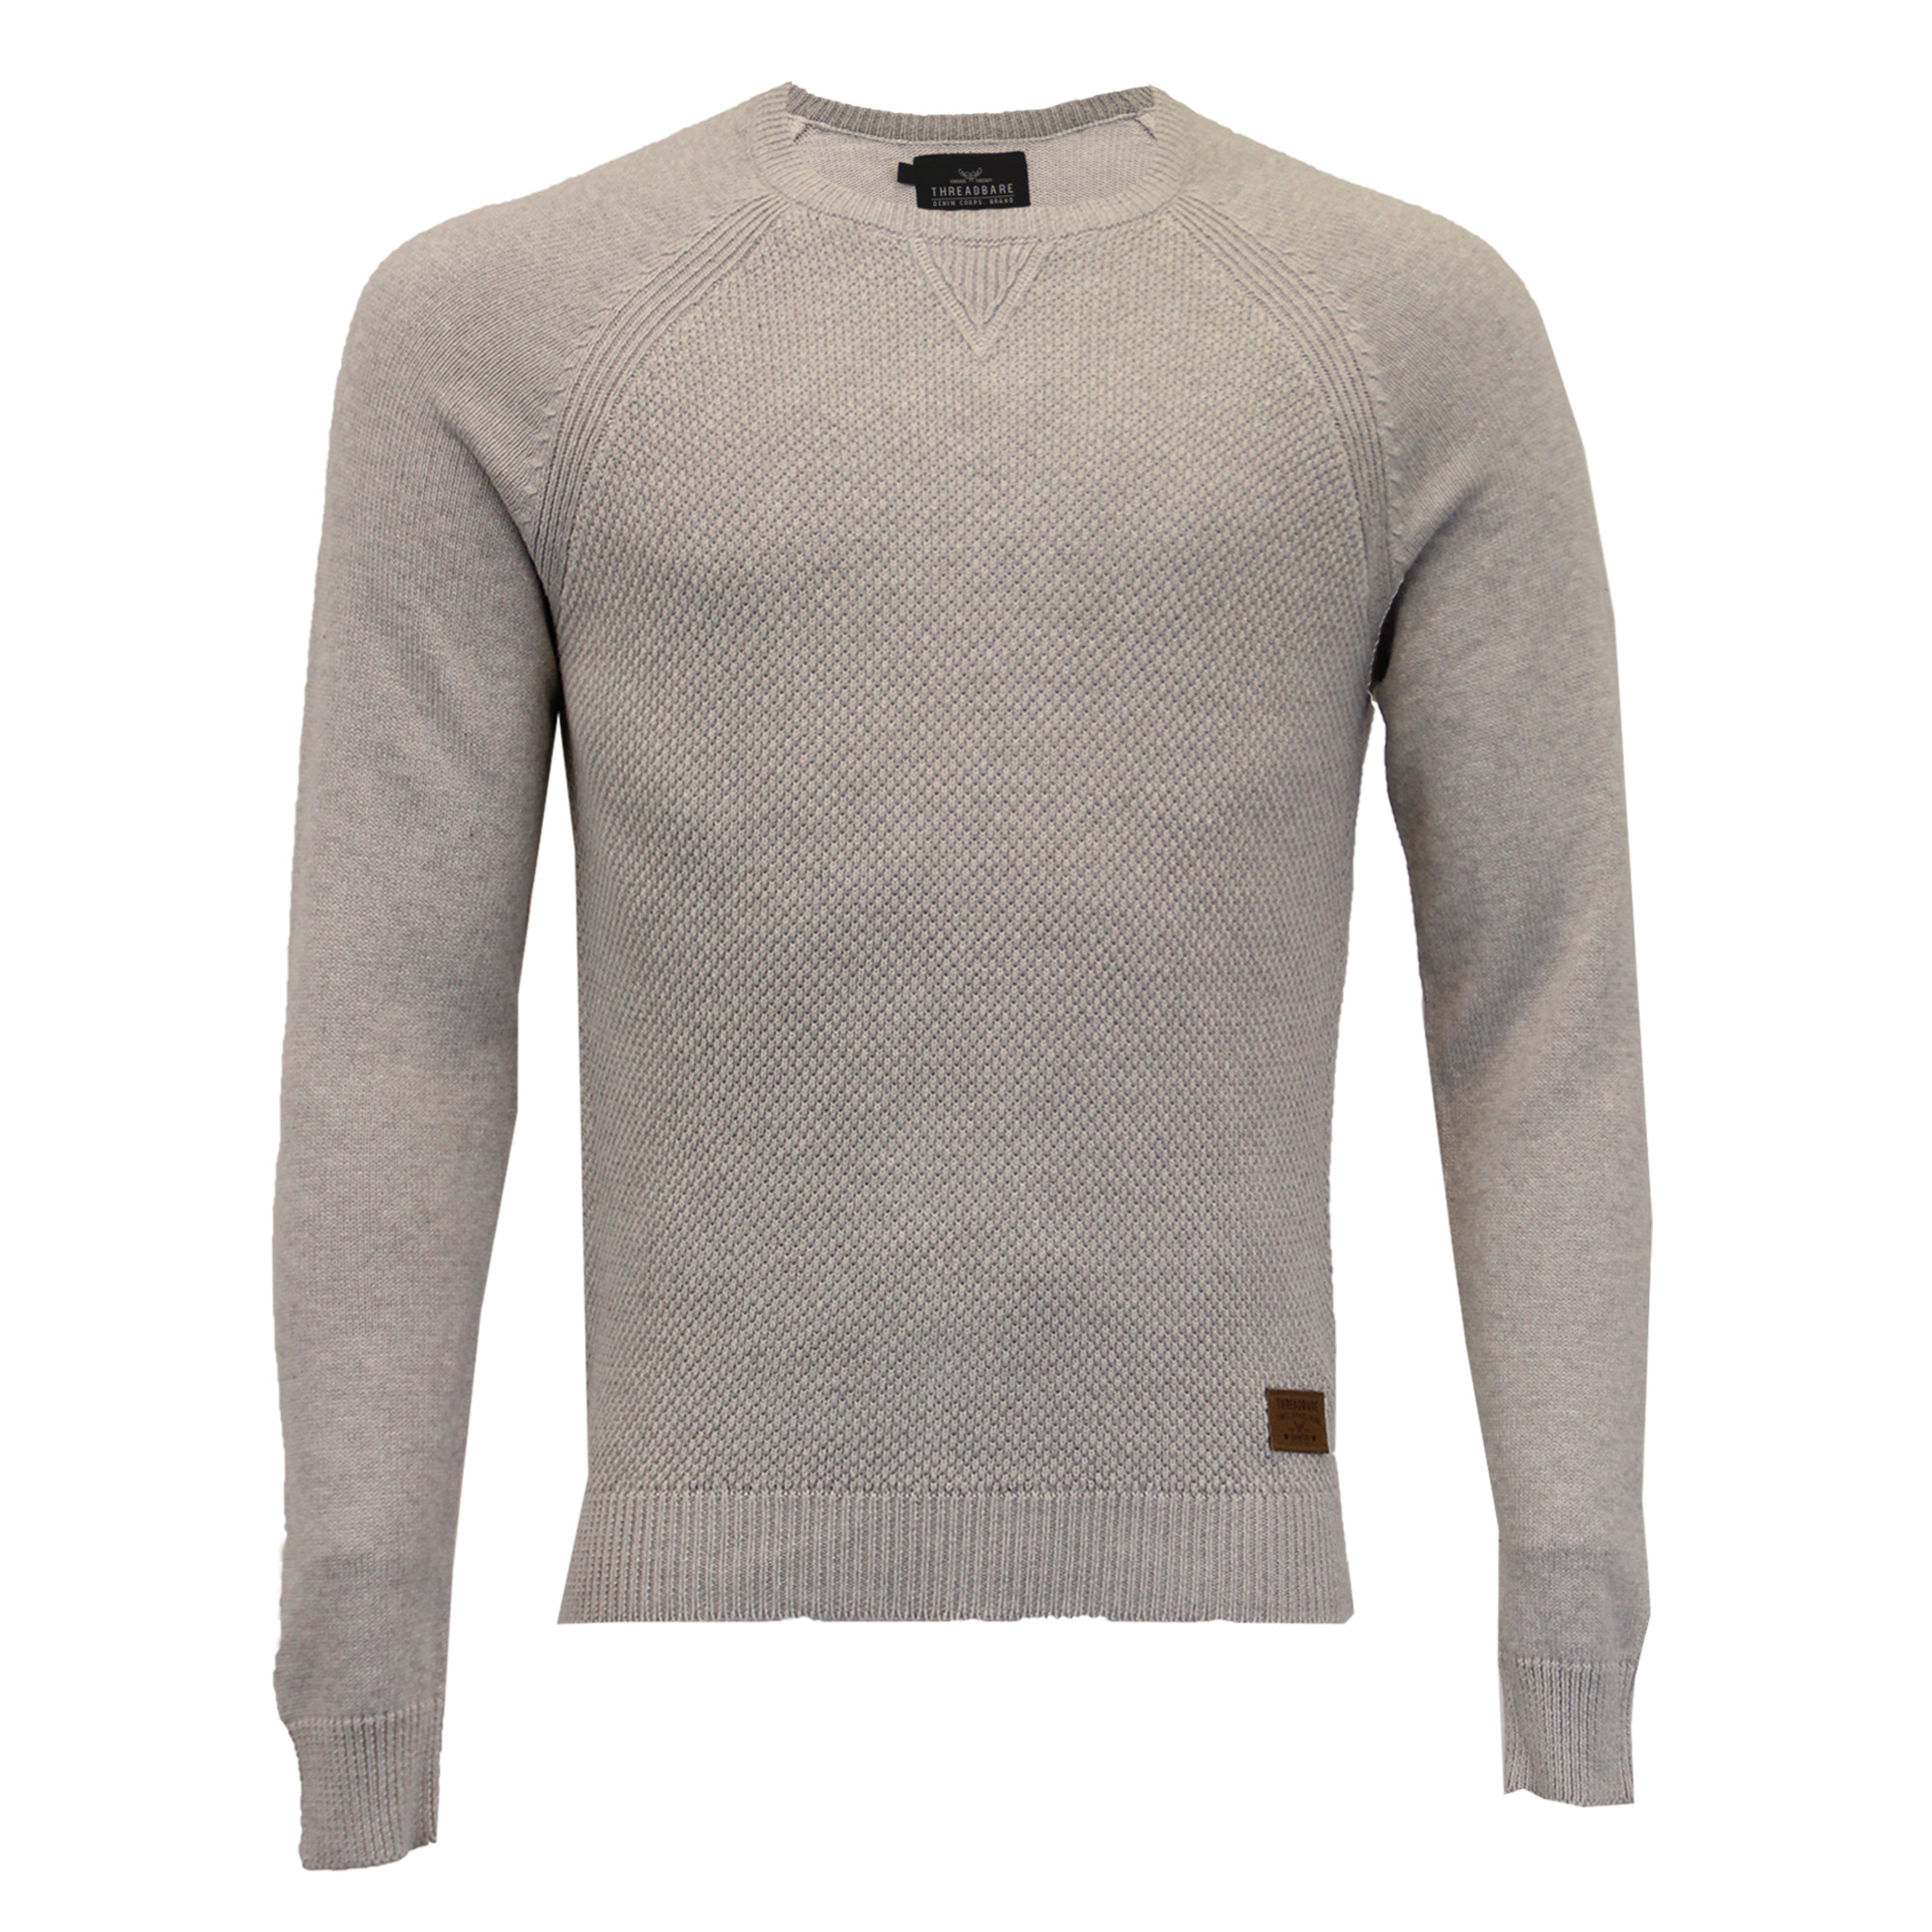 Mens-Jumper-Threadbare-Knitted-Cotton-Sweater-Half-Zip-Pullover-Top-Winter-New thumbnail 18